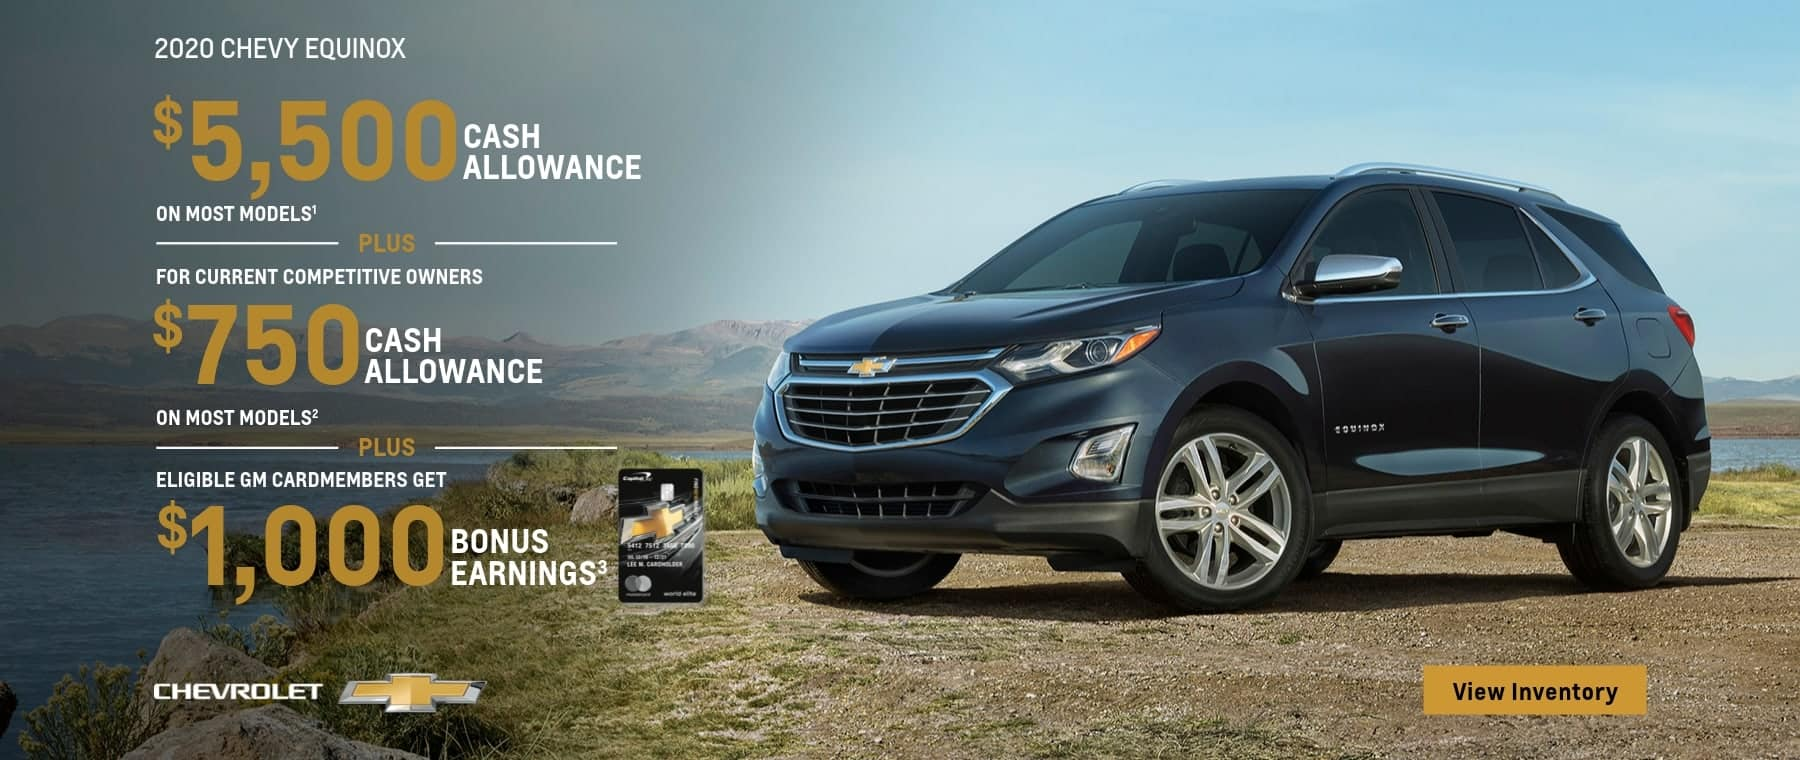 2020 Chevy Equinox $5,500 Cash Allowance on most models plus for current competitive owners $750 cash allowance on most models. Plus eligible GM card members get $1,000 GM Card bonus earnings.